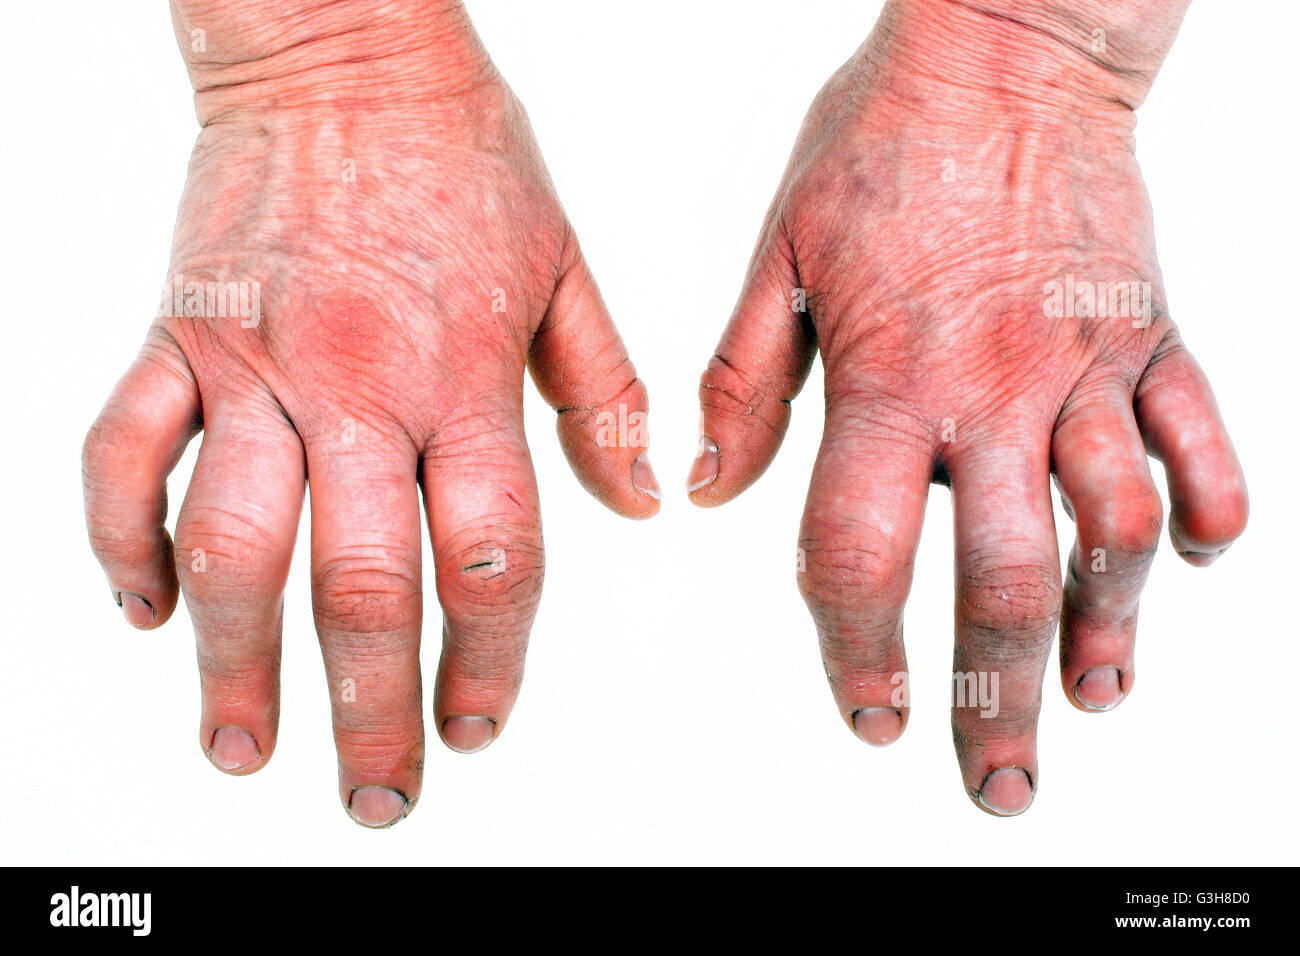 Woman S Hands Deformed From Rheumatoid Arthritis Stock Photo Alamy